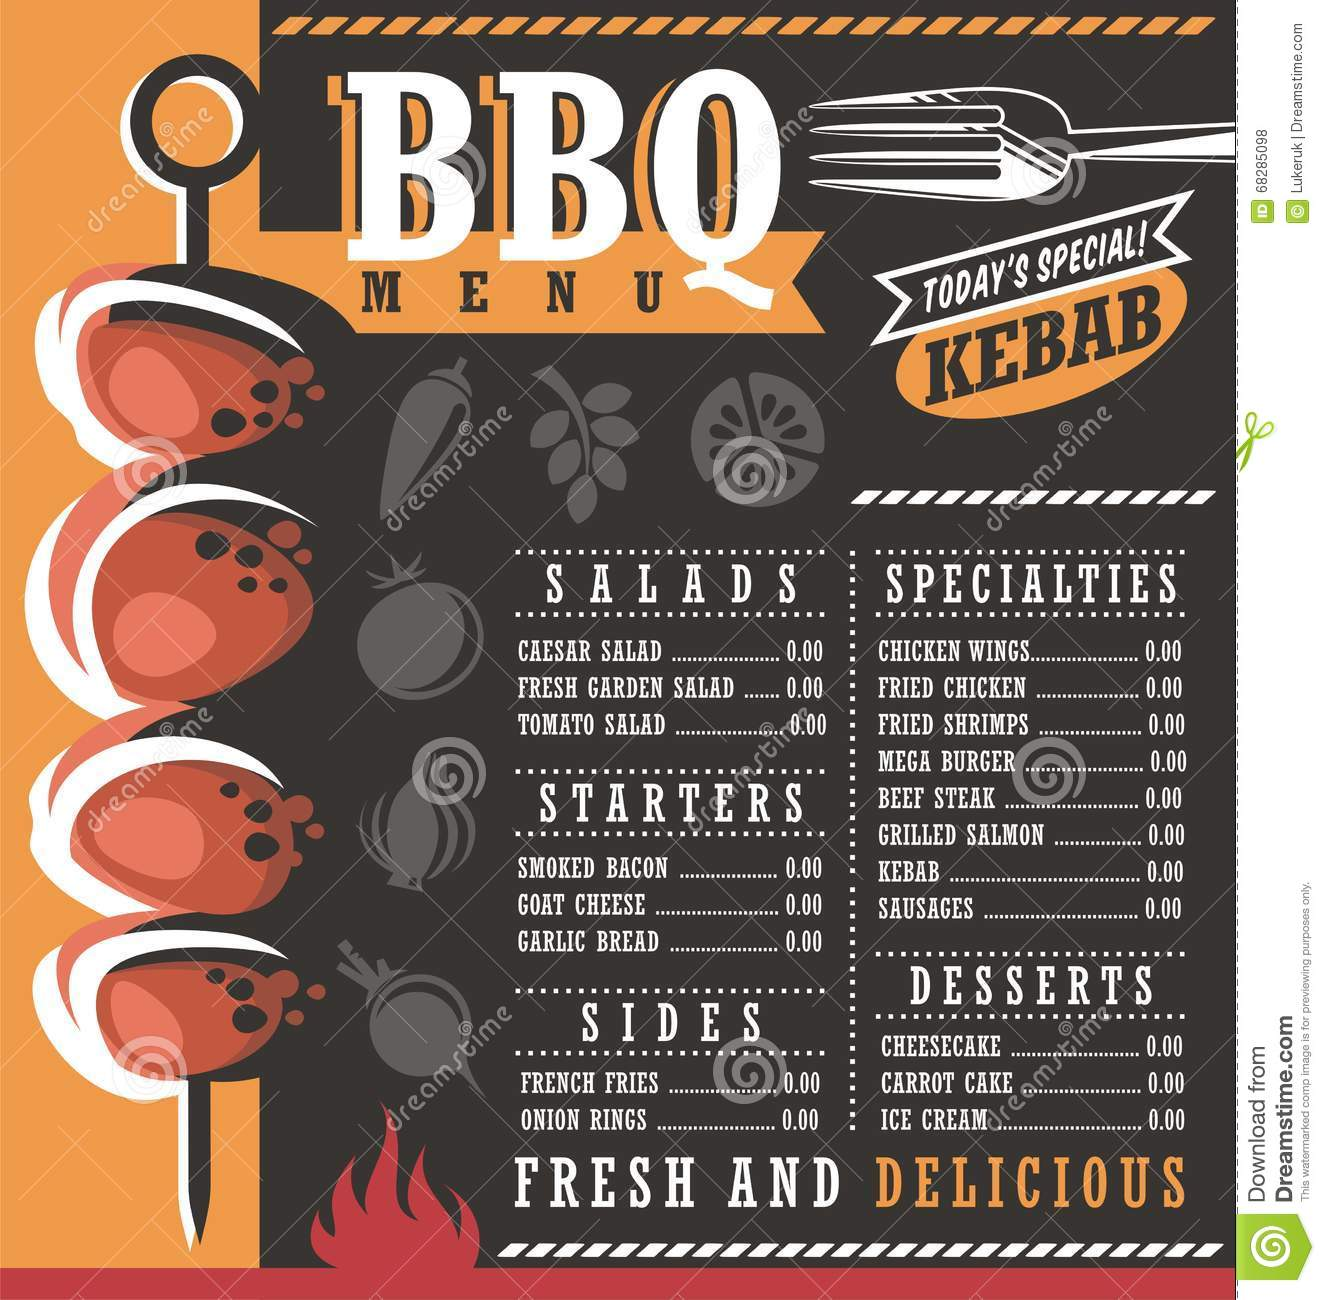 Bbq Restaurant Menu Design Stock Vector Illustration Of